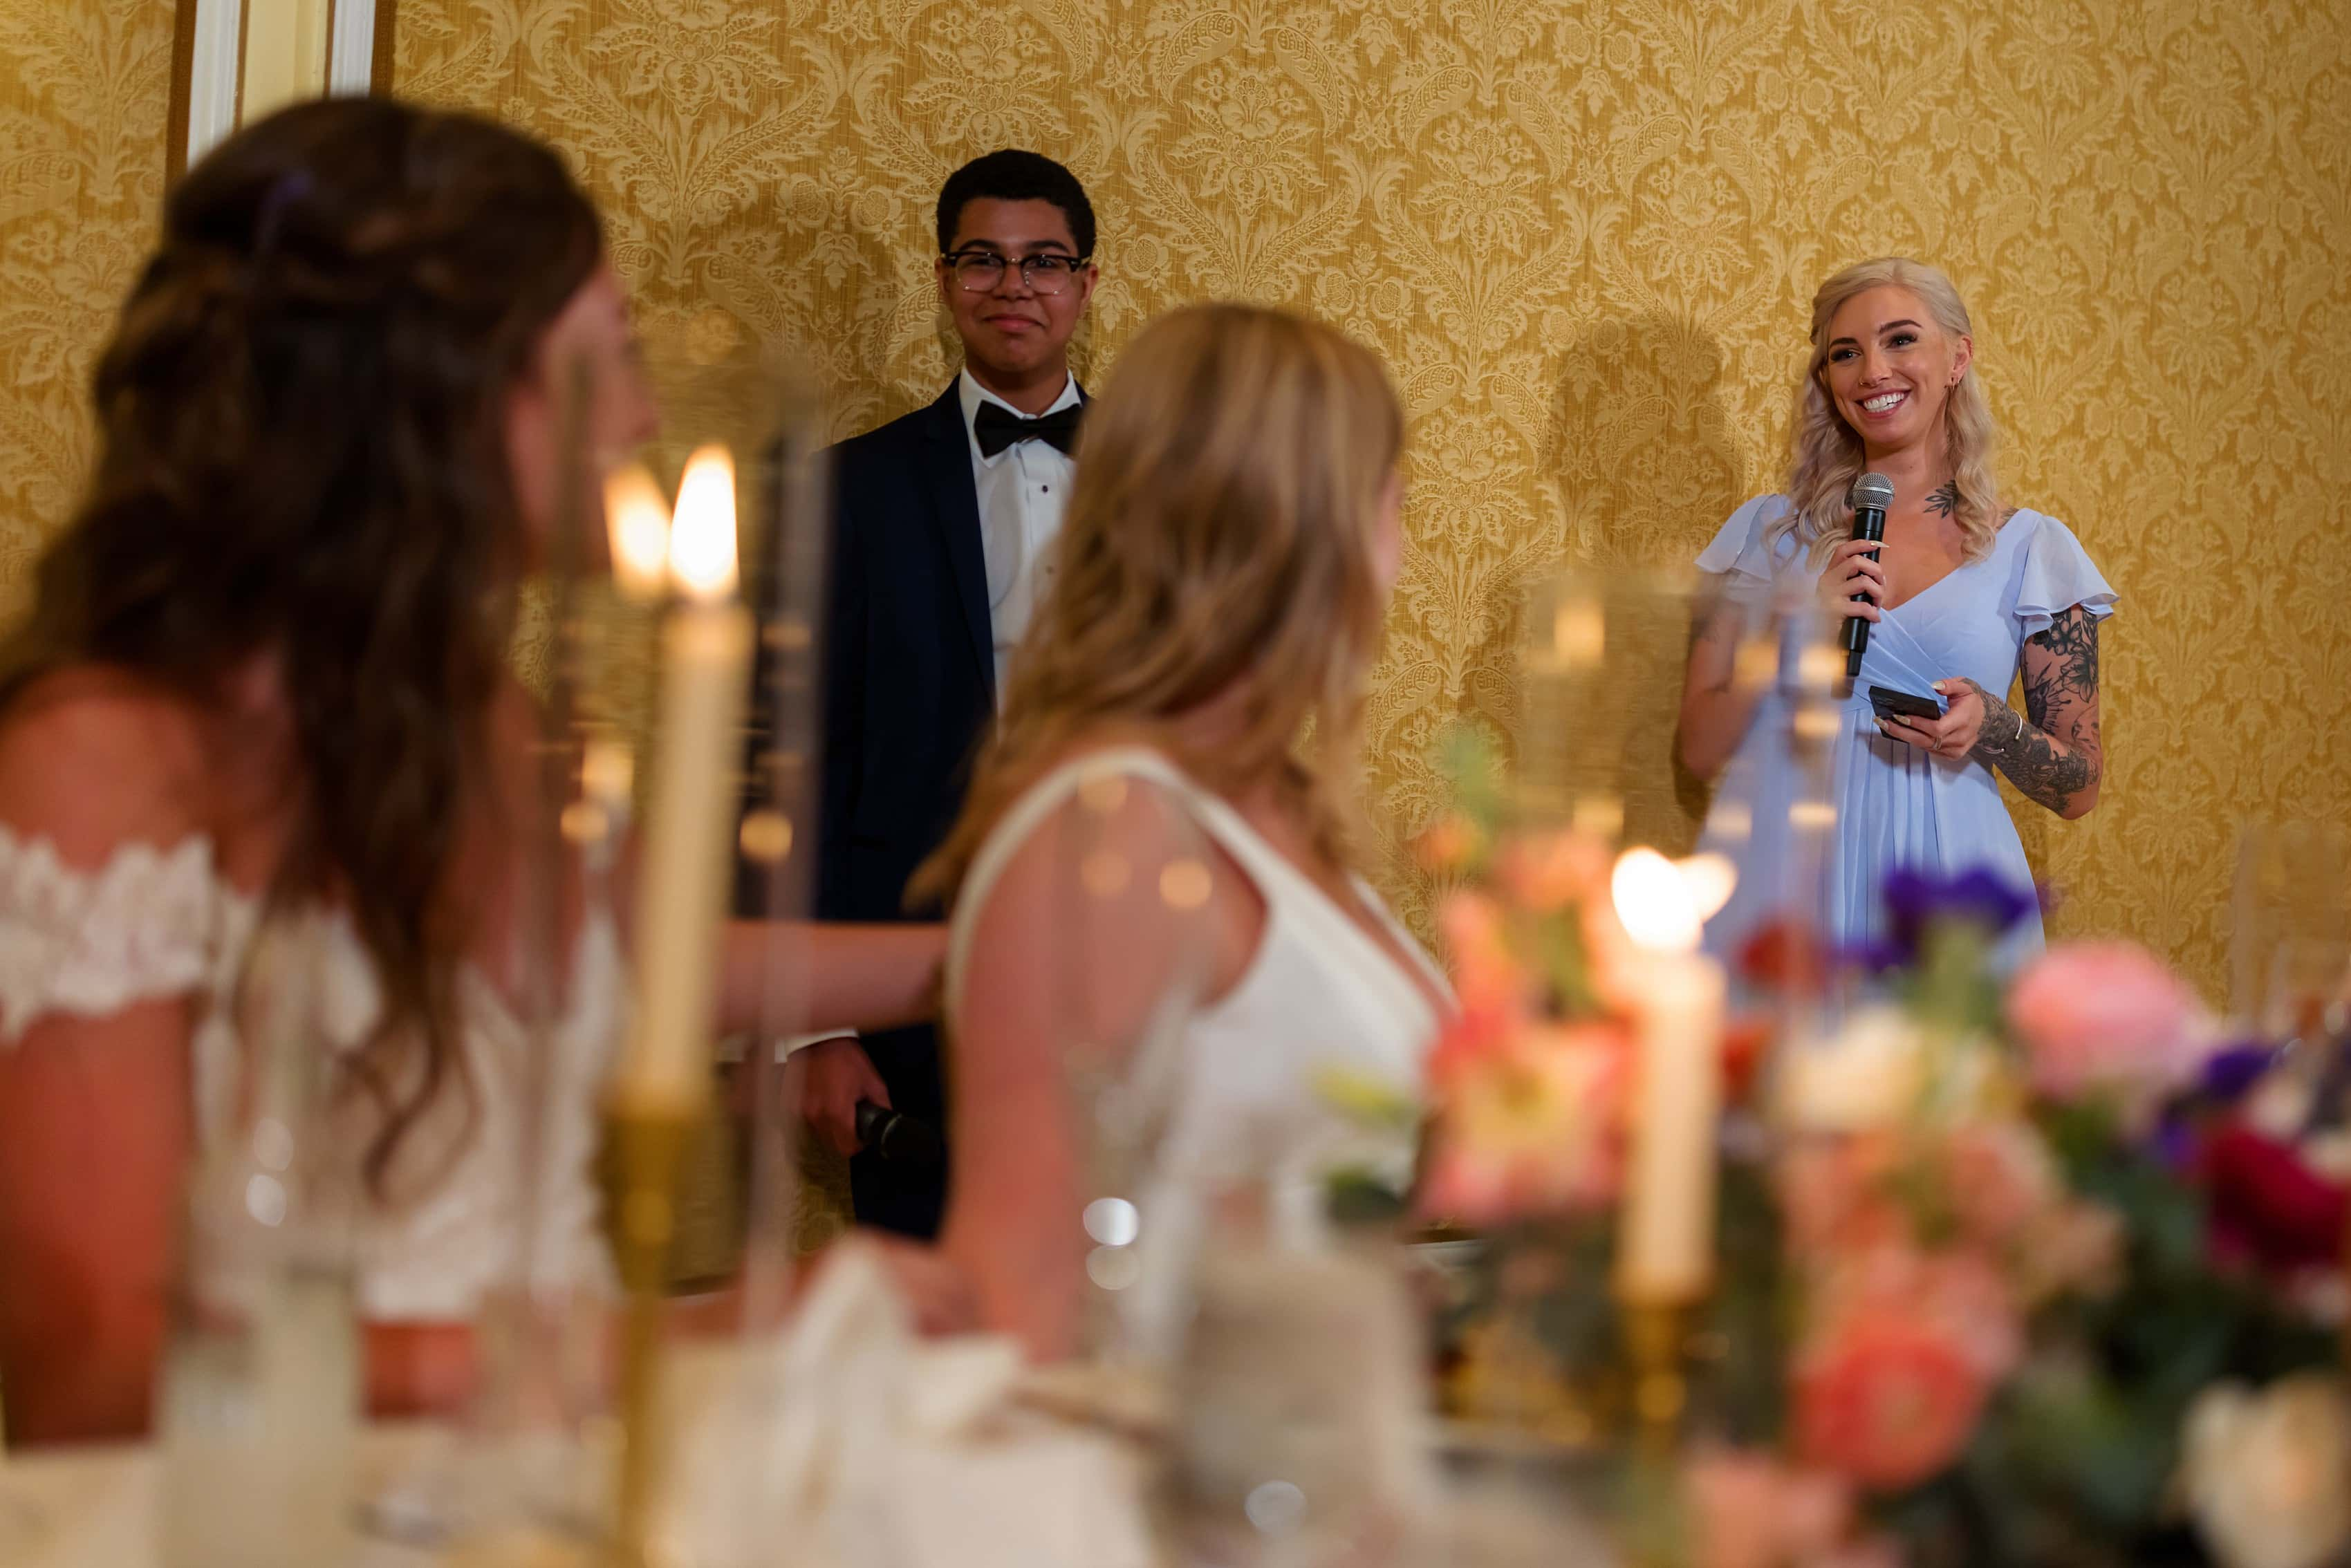 siblings give toast during wedding reception